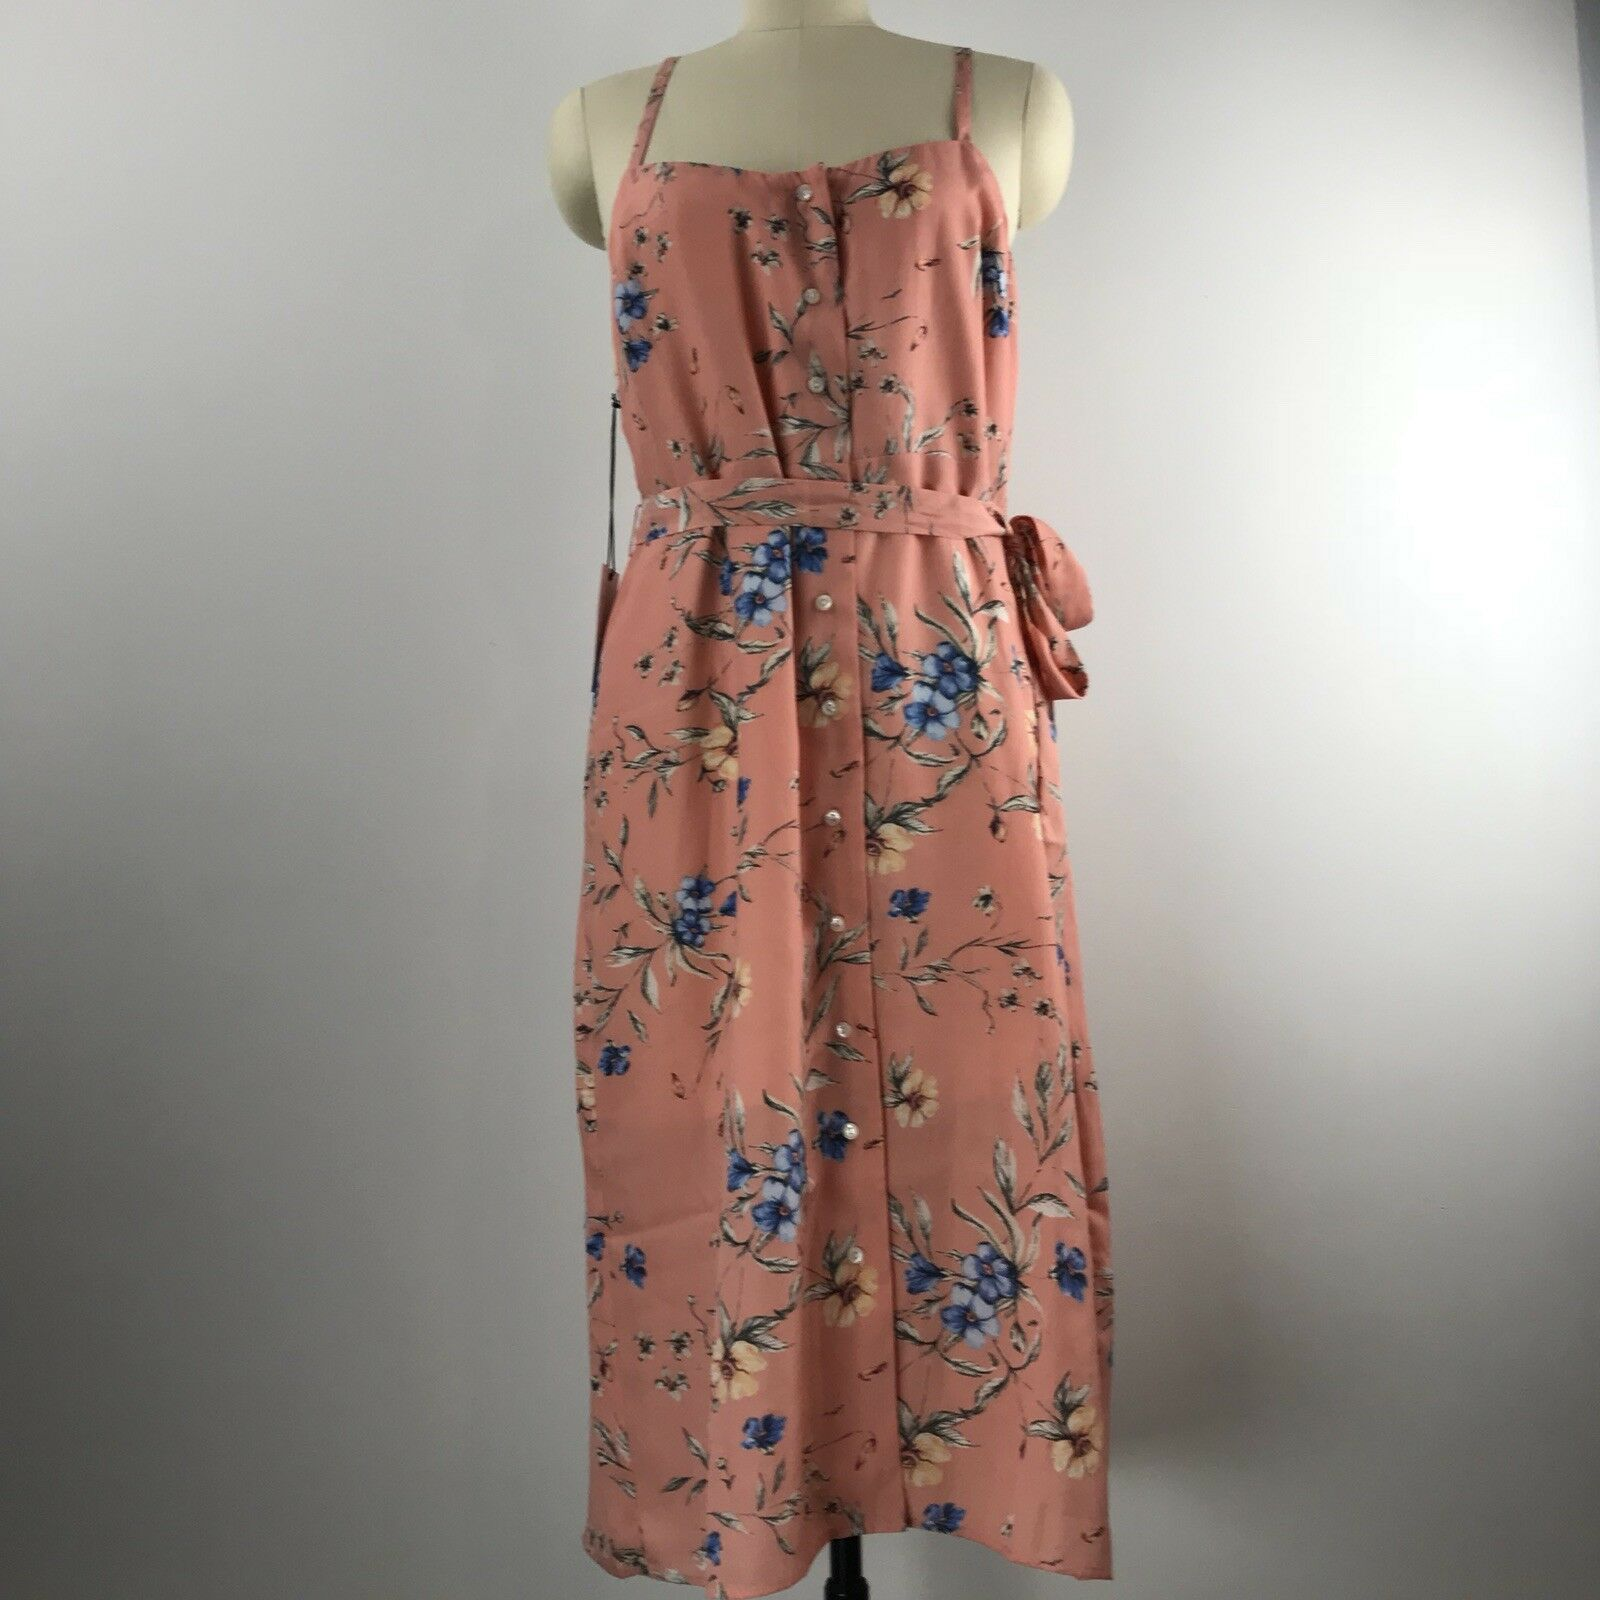 Ali & Jay Flower Frolicking Sleeveless Button Up Midi Dress Woherren Größe Large